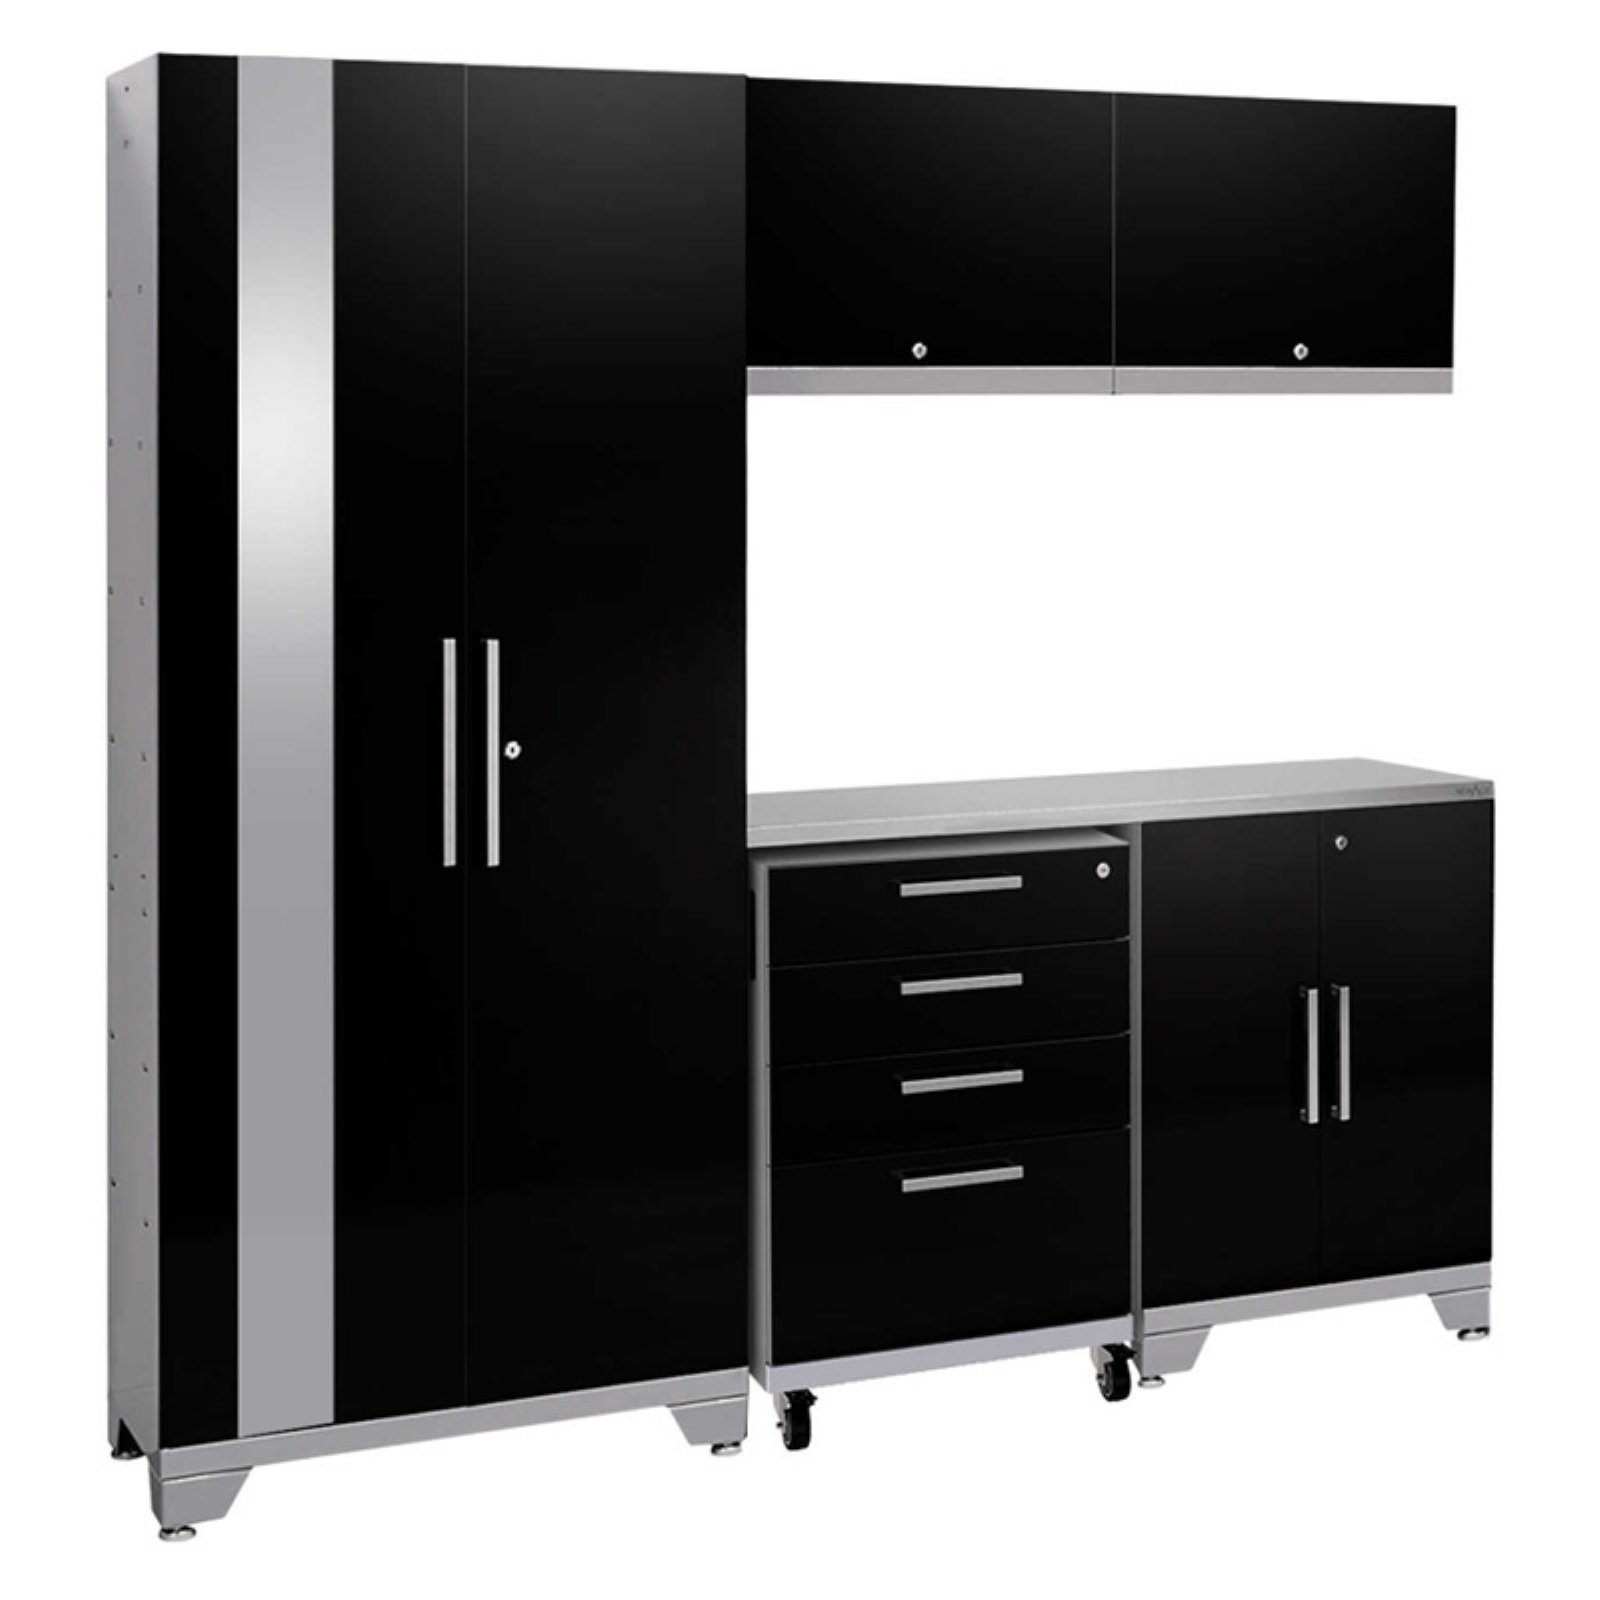 NewAge Products Performance 2.0 6 Piece Garage Cabinet System